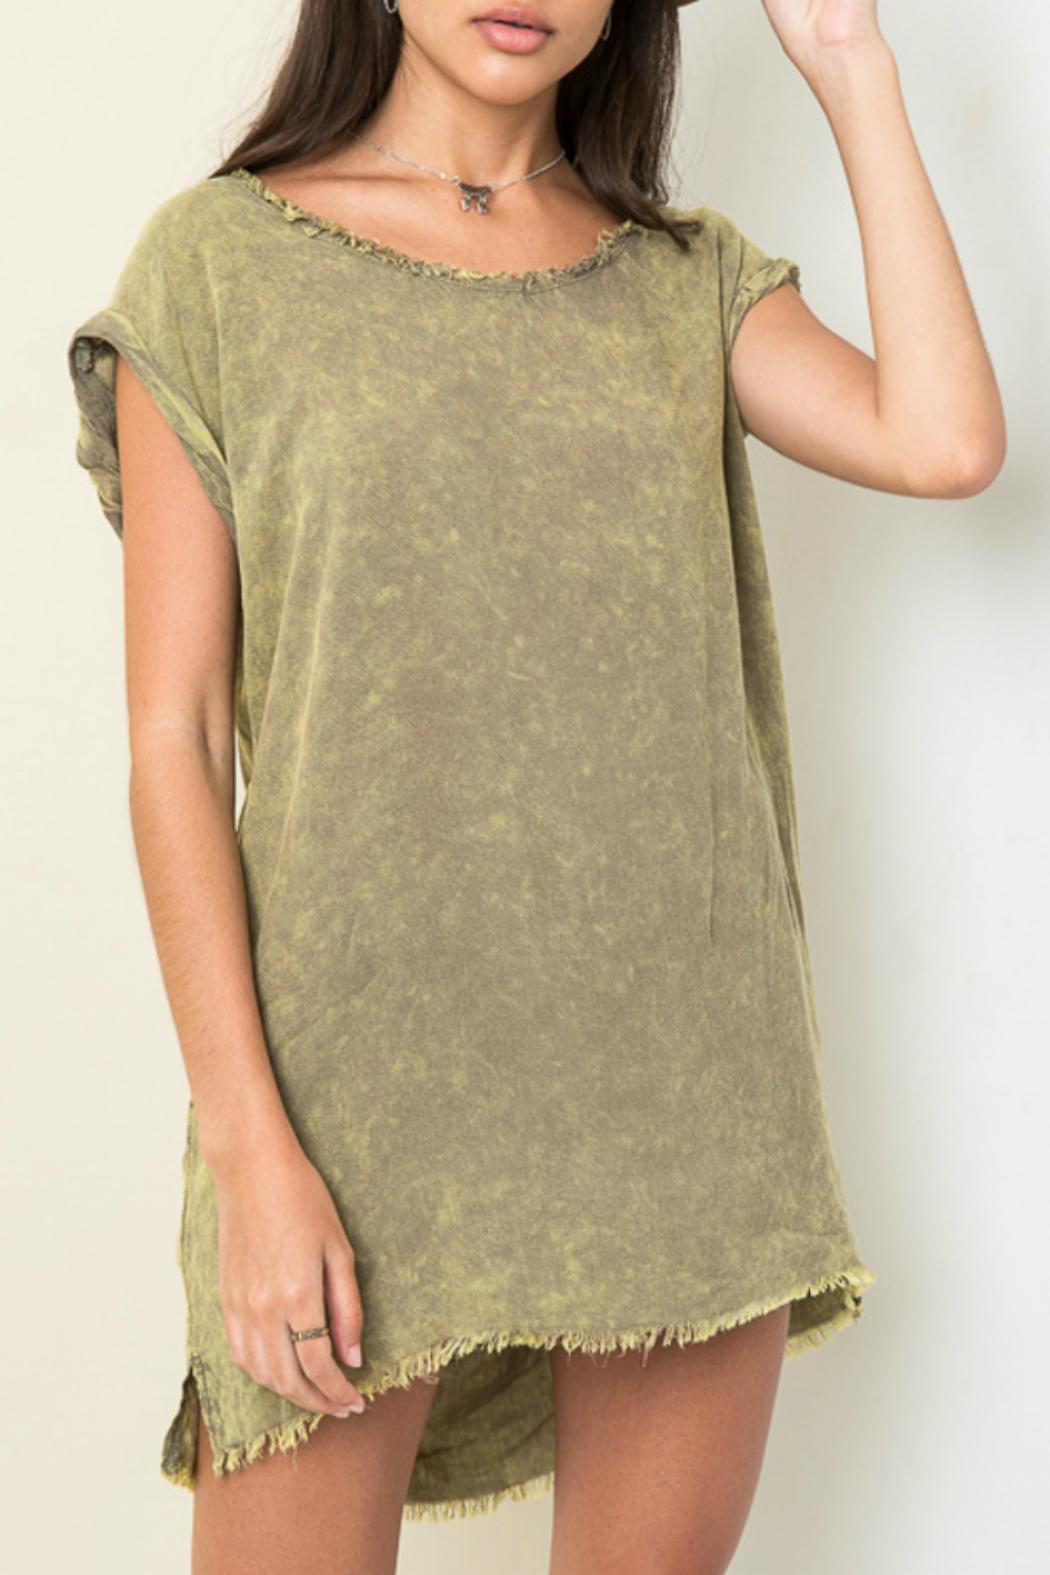 Hayden Los Angeles Washed Distressed Top - Main Image